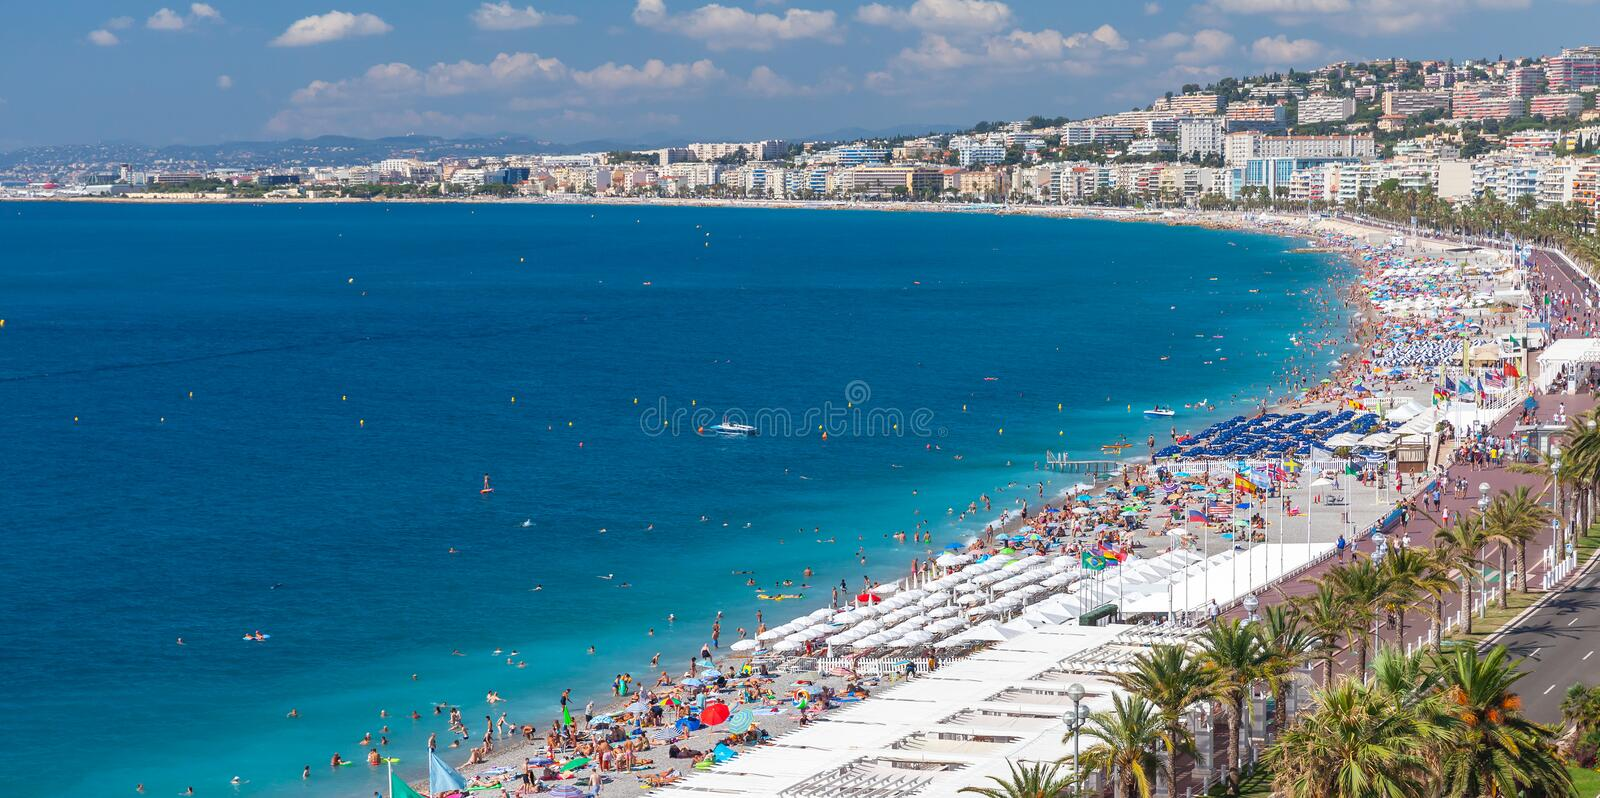 Paysage c?tier panoramique de Nice, France photographie stock